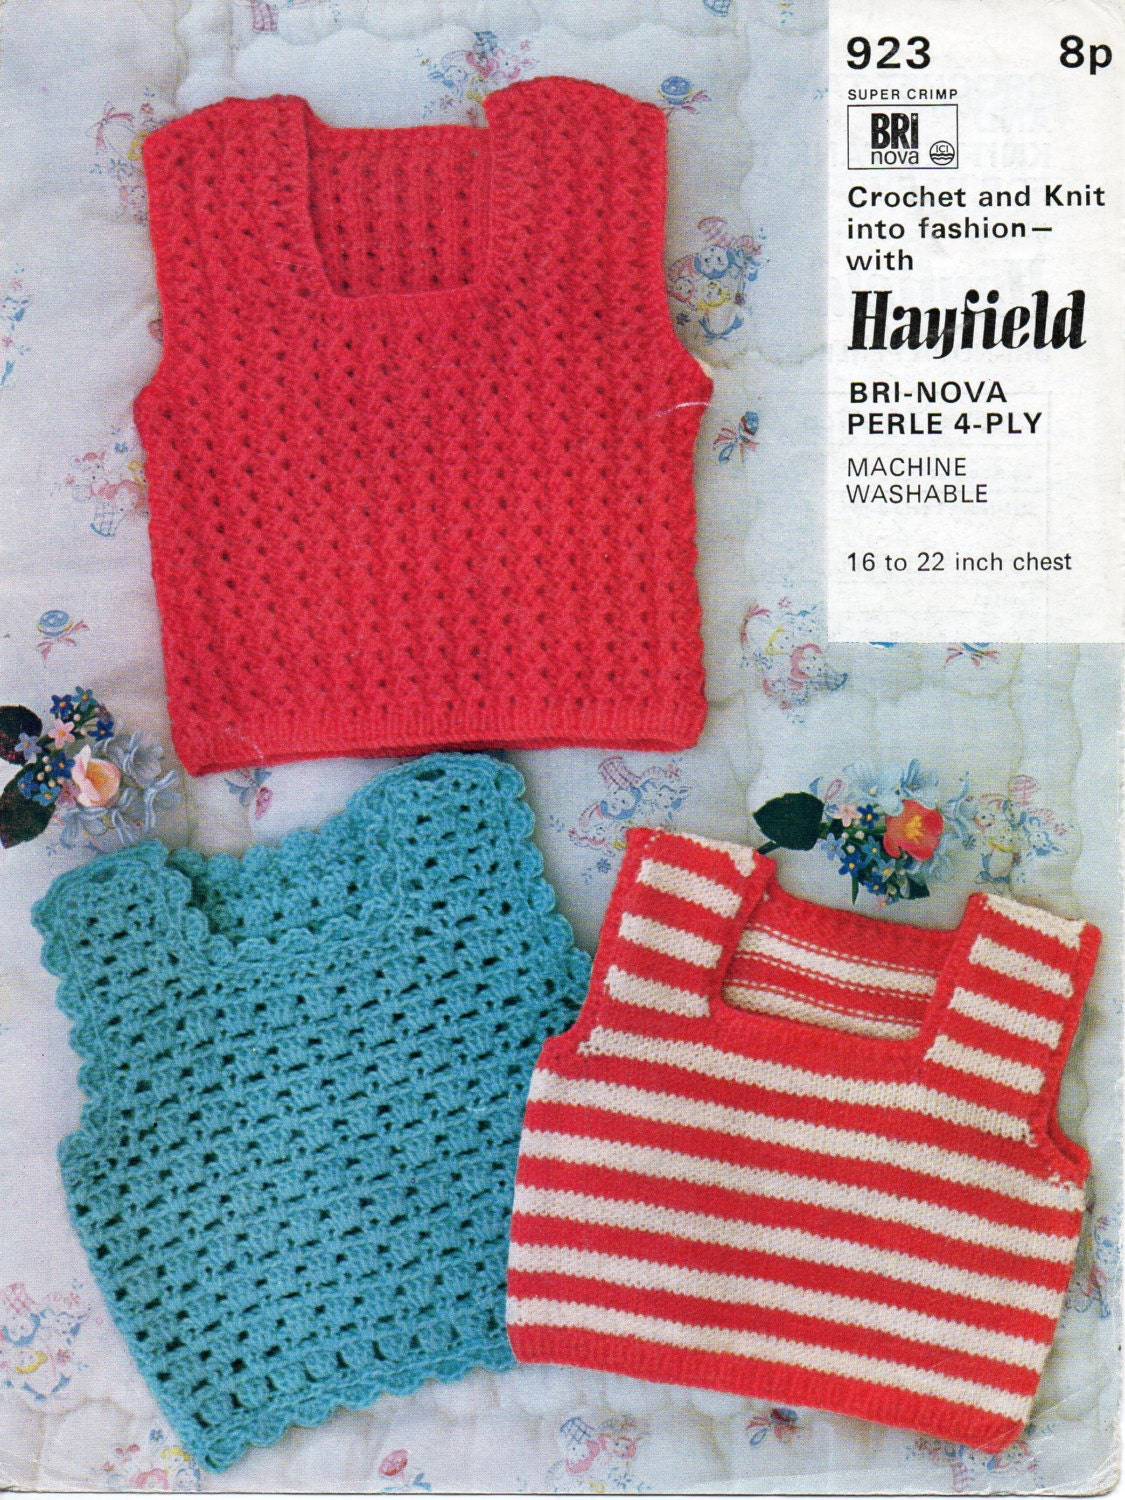 Knitting Pattern Baby Tank Top : baby 4ply crochet tank top crochet pattern baby knitted tank